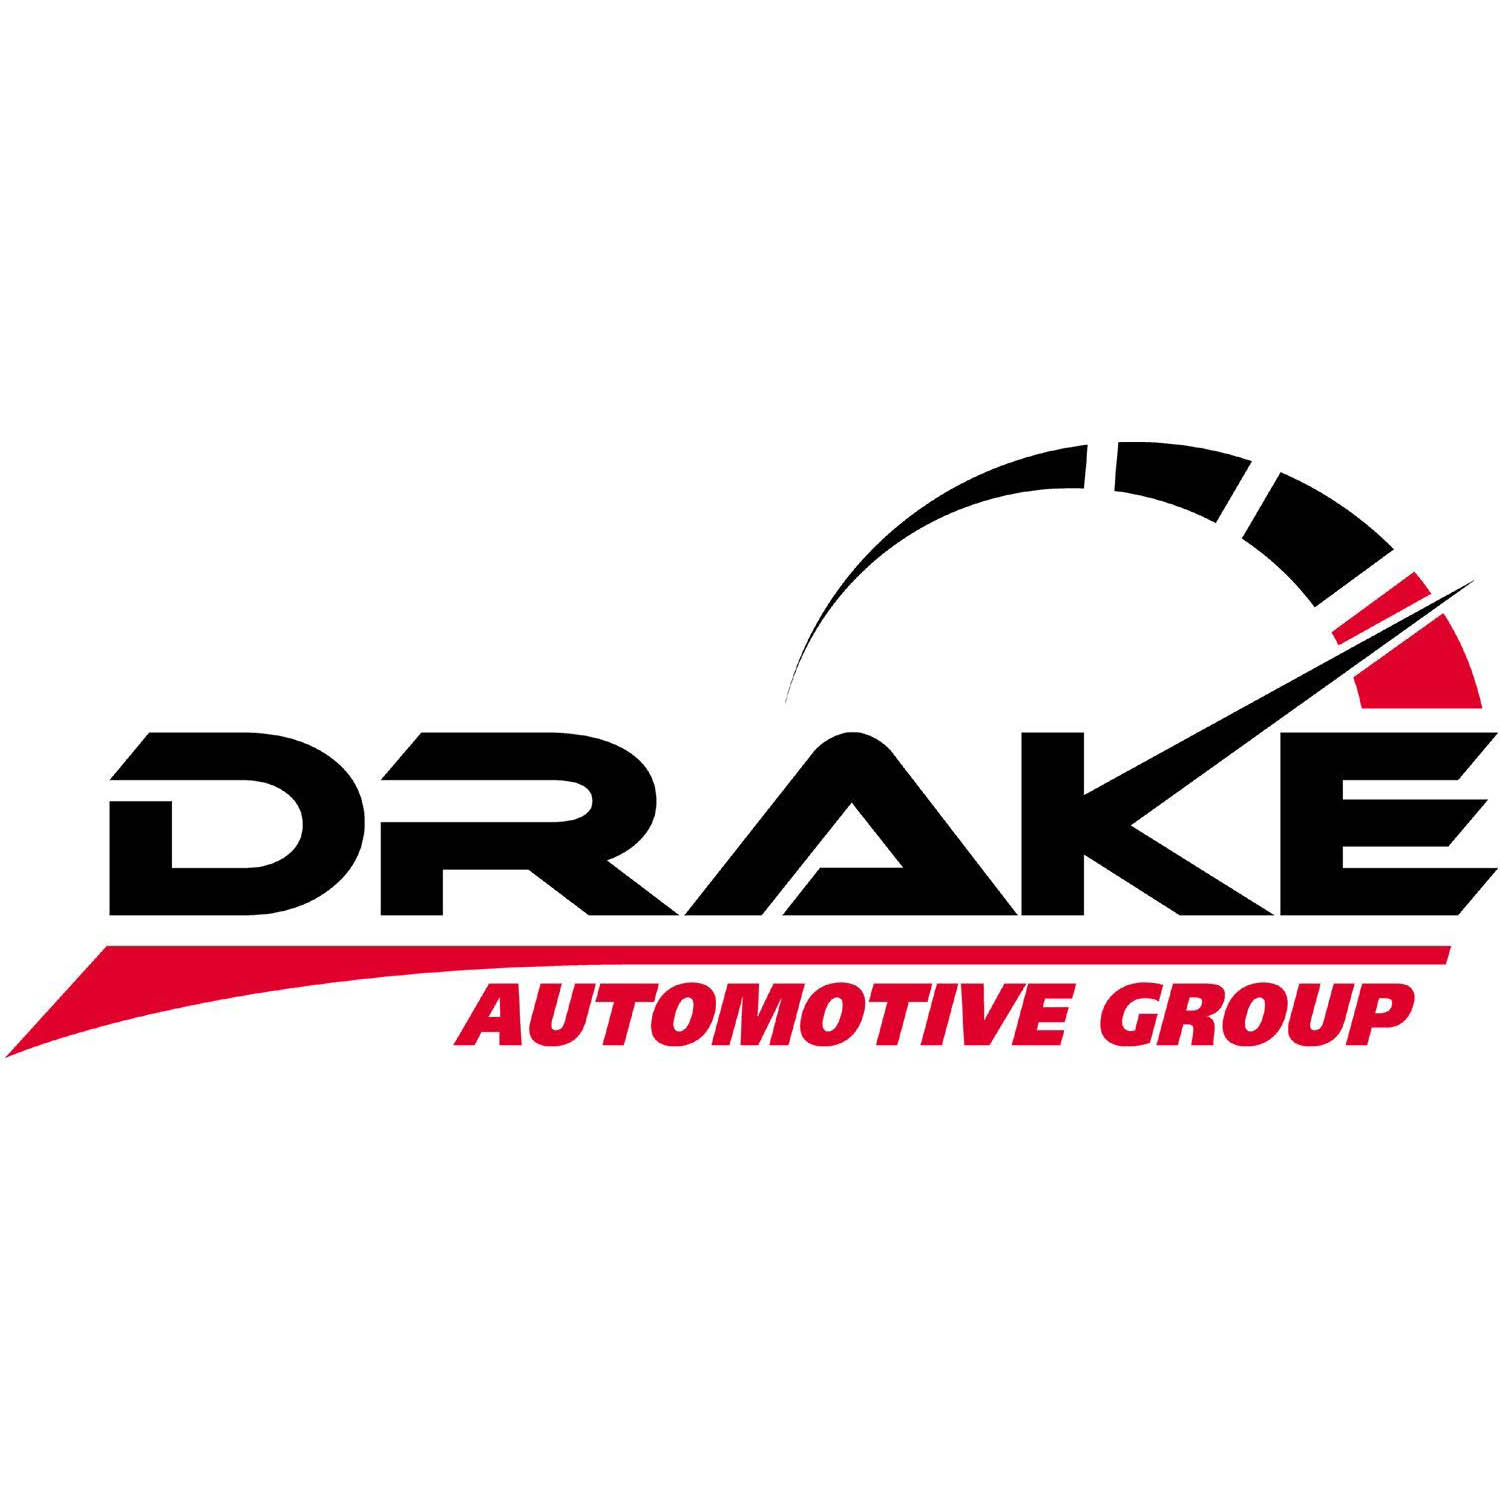 Drake Automotive category image